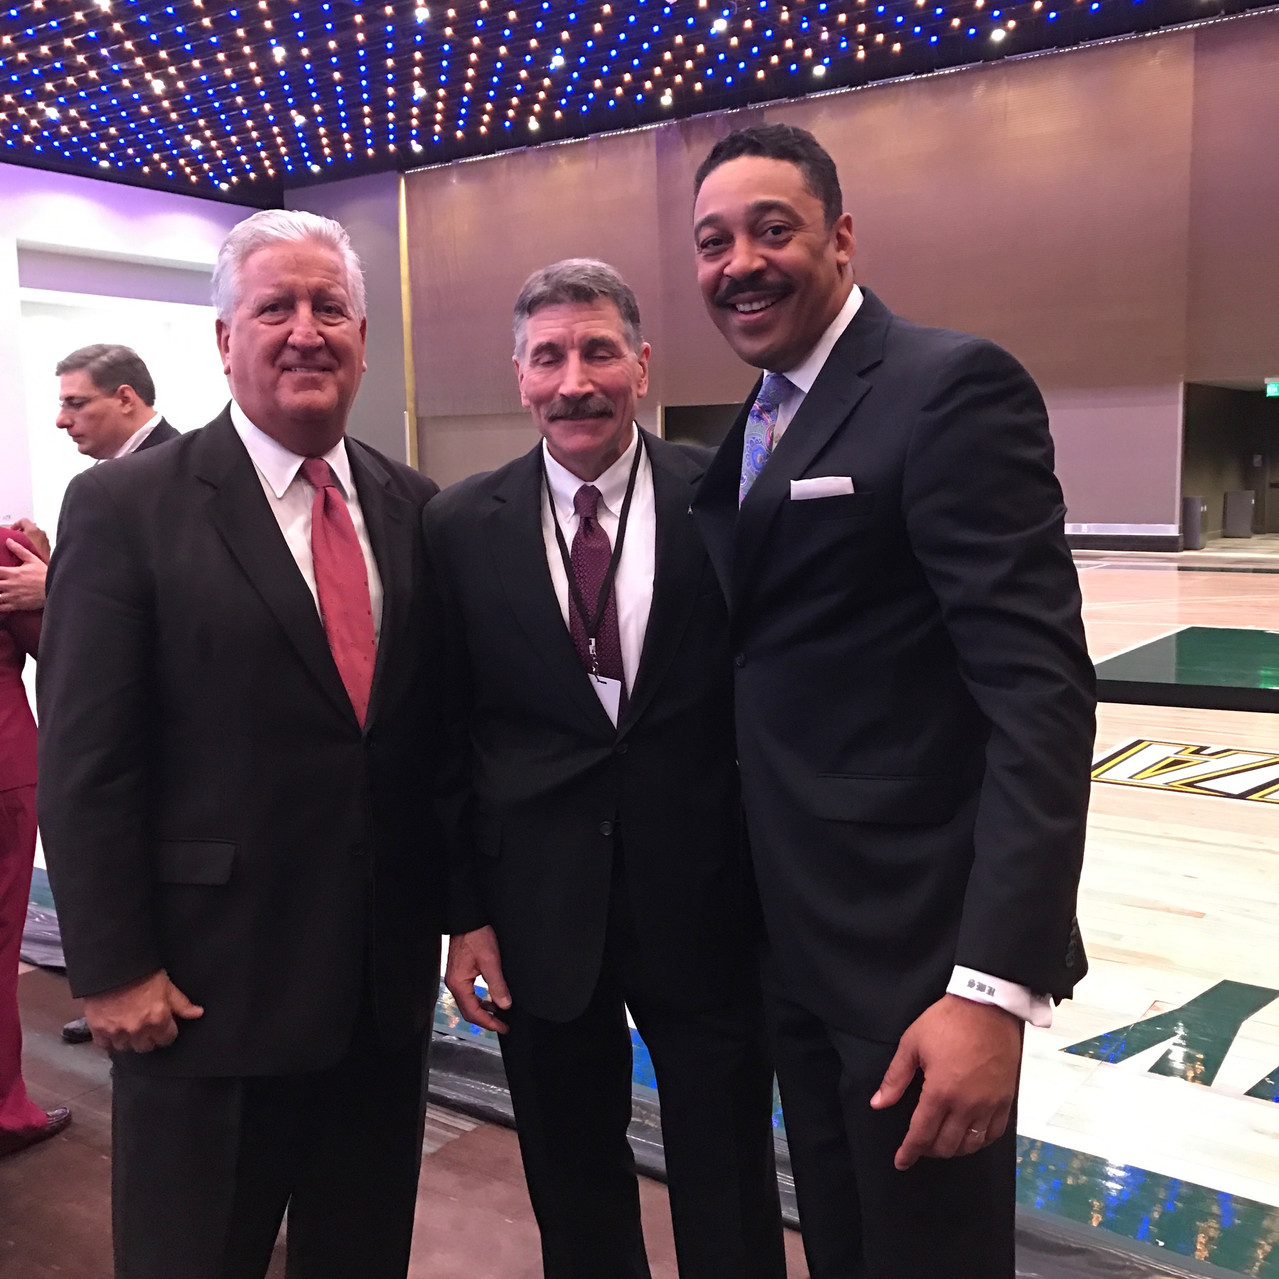 Former Albany Major Jennings, Duncan Stewart CEO of ACCA, and Shawn Hamlin of Hamlin Design Group celebrate at the ribbon cutting event